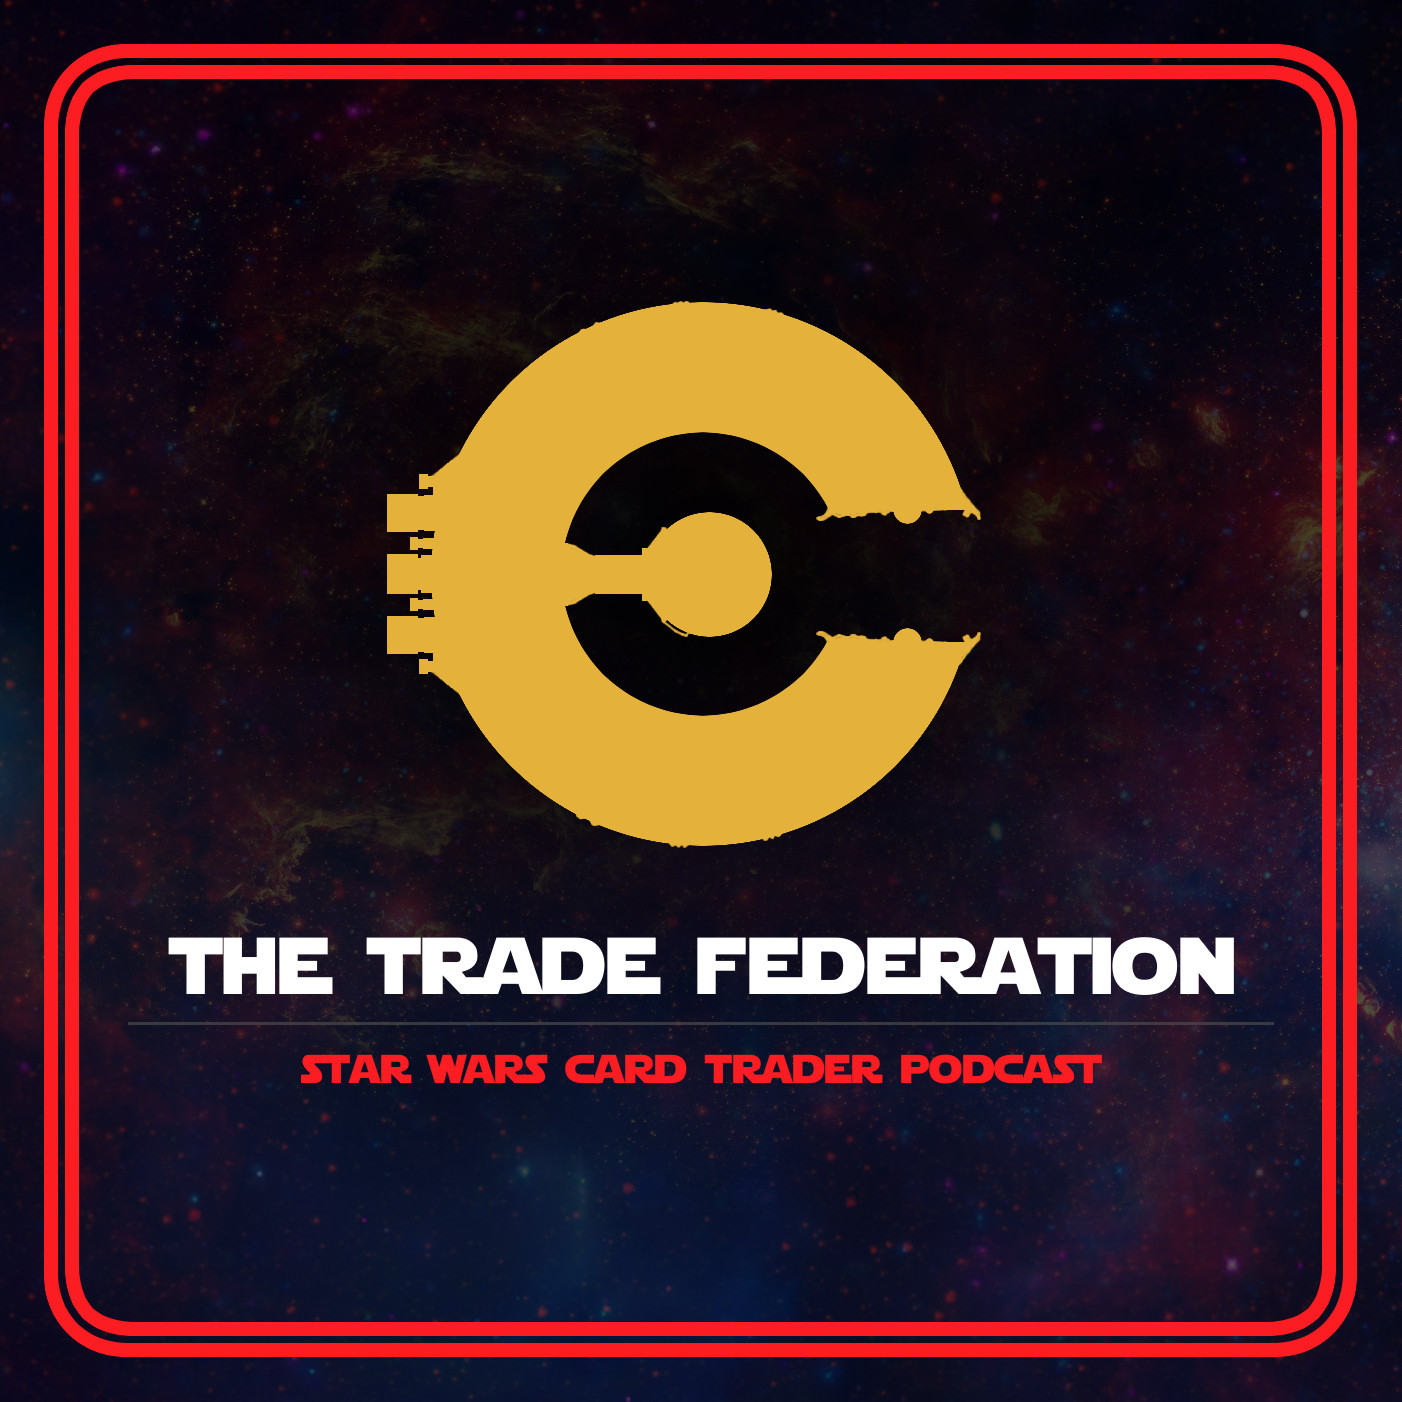 The Trade Federation podcast, Star Wars Card Trader, Star Wars Card Trader